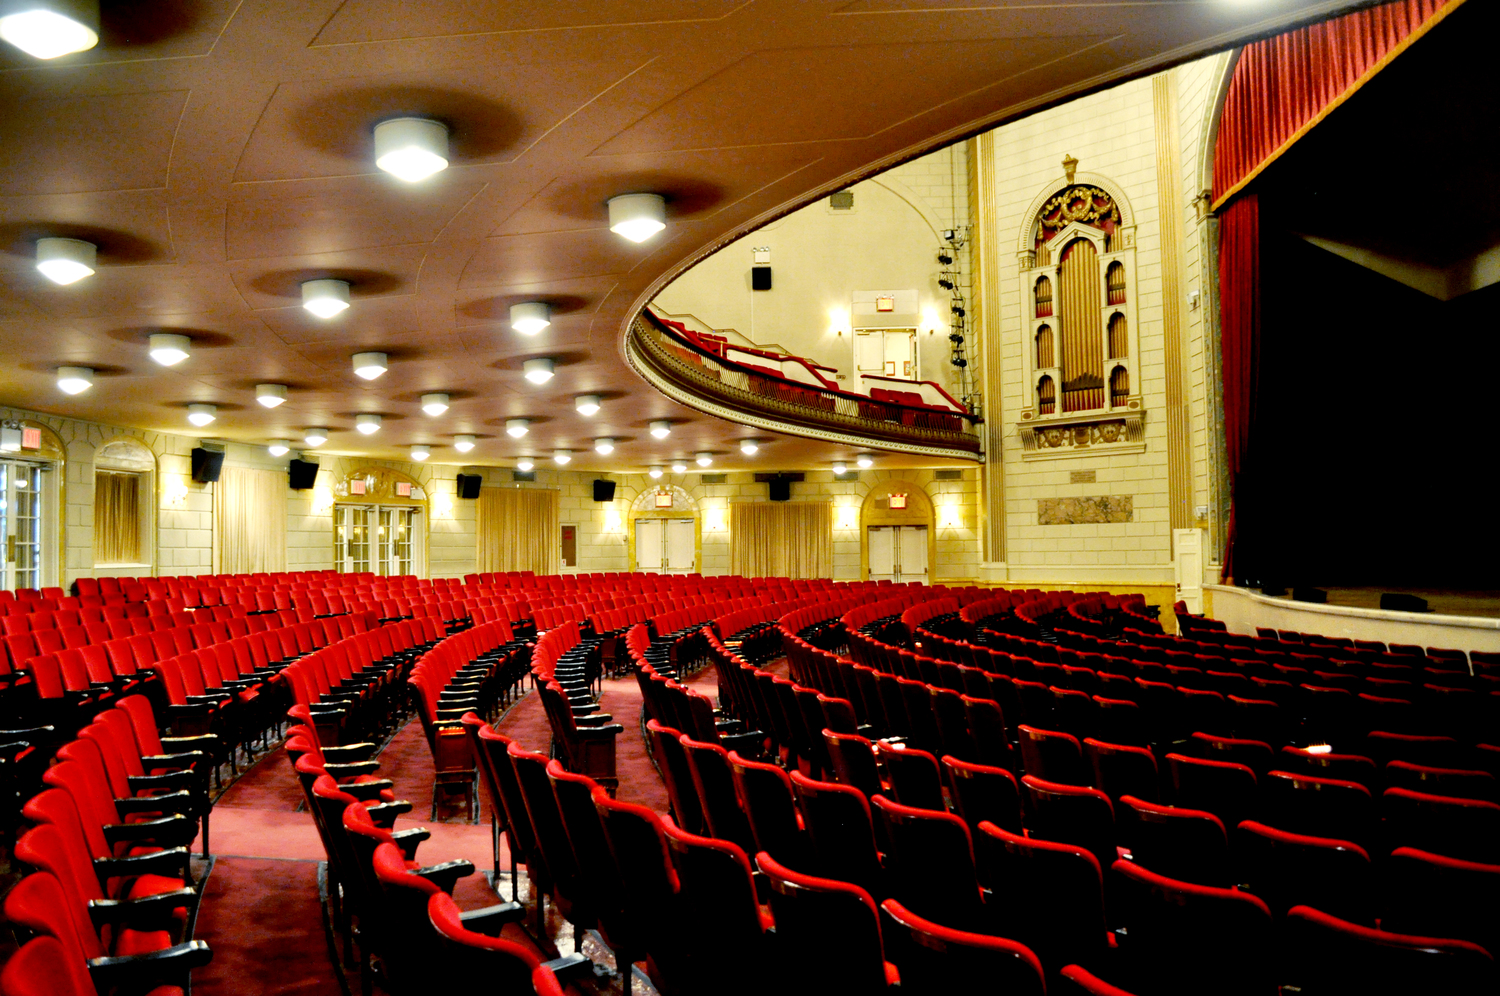 Top 5 Student Performance Venues In New York City